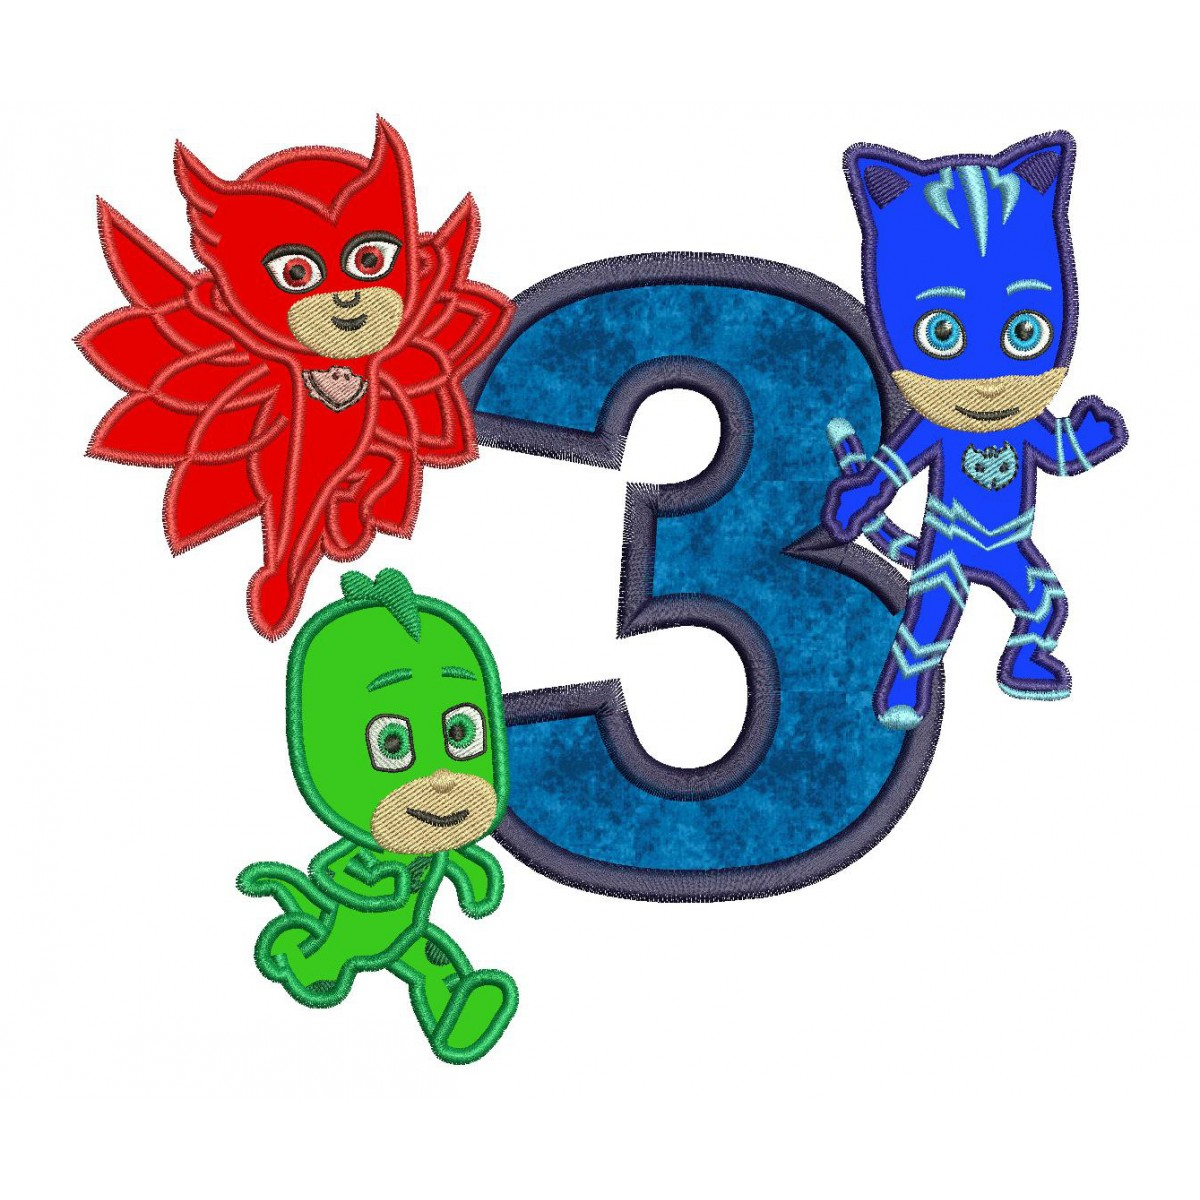 Pj mask birthday clipart image freeuse download Pj Masks 3rd Birthday Embroidery Applique Design image freeuse download